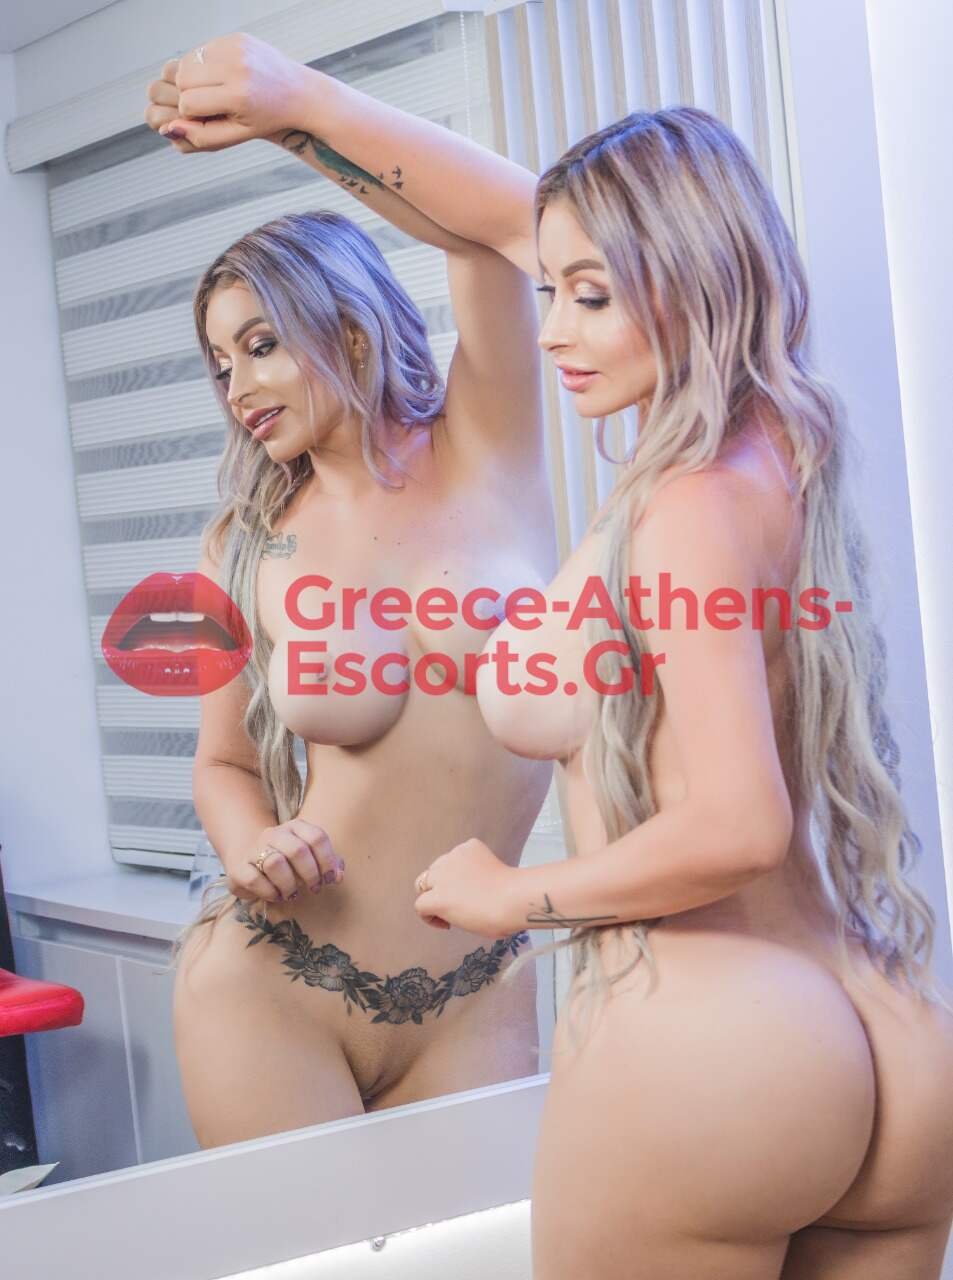 LUCIANA COLOMBIAN SUPER HOT ATHENS DIVA 3